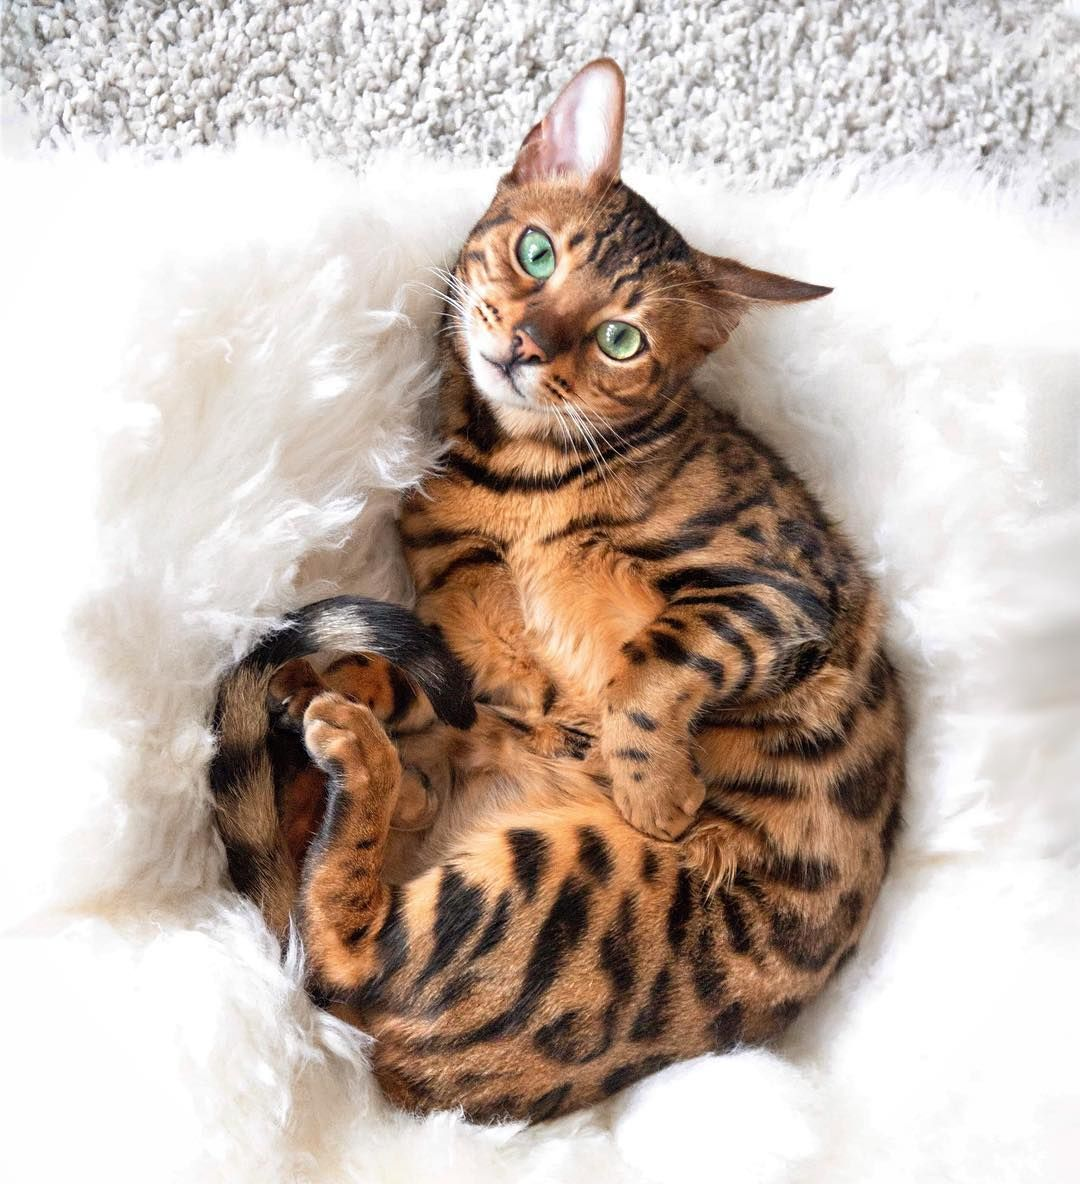 Don T Just Stand There Hooman Rub My Belly Bengal Kitten Bengal Cat Cats